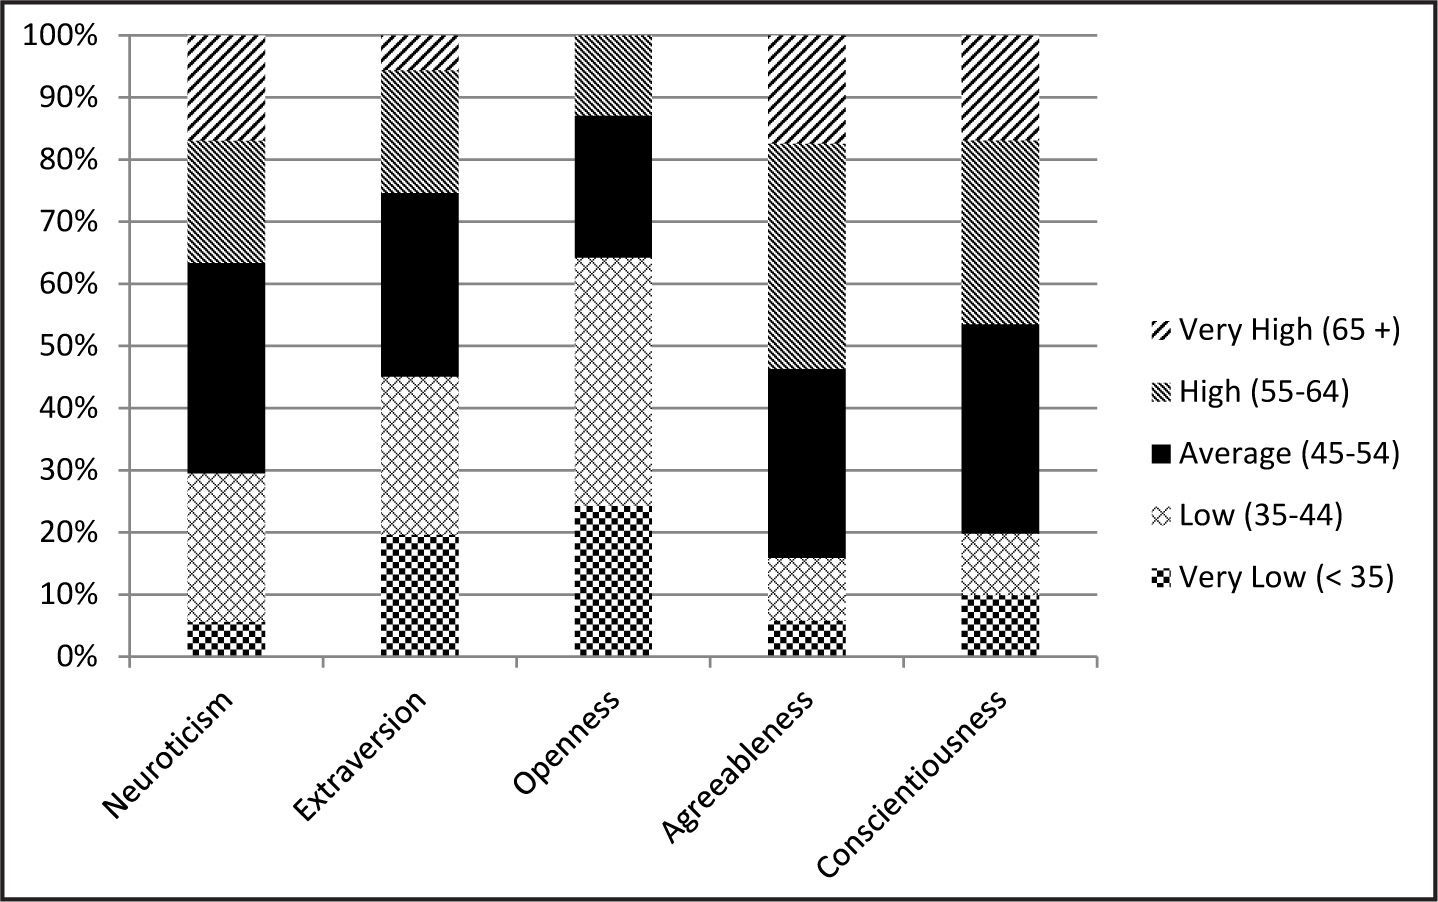 Personality trait intensity categories.